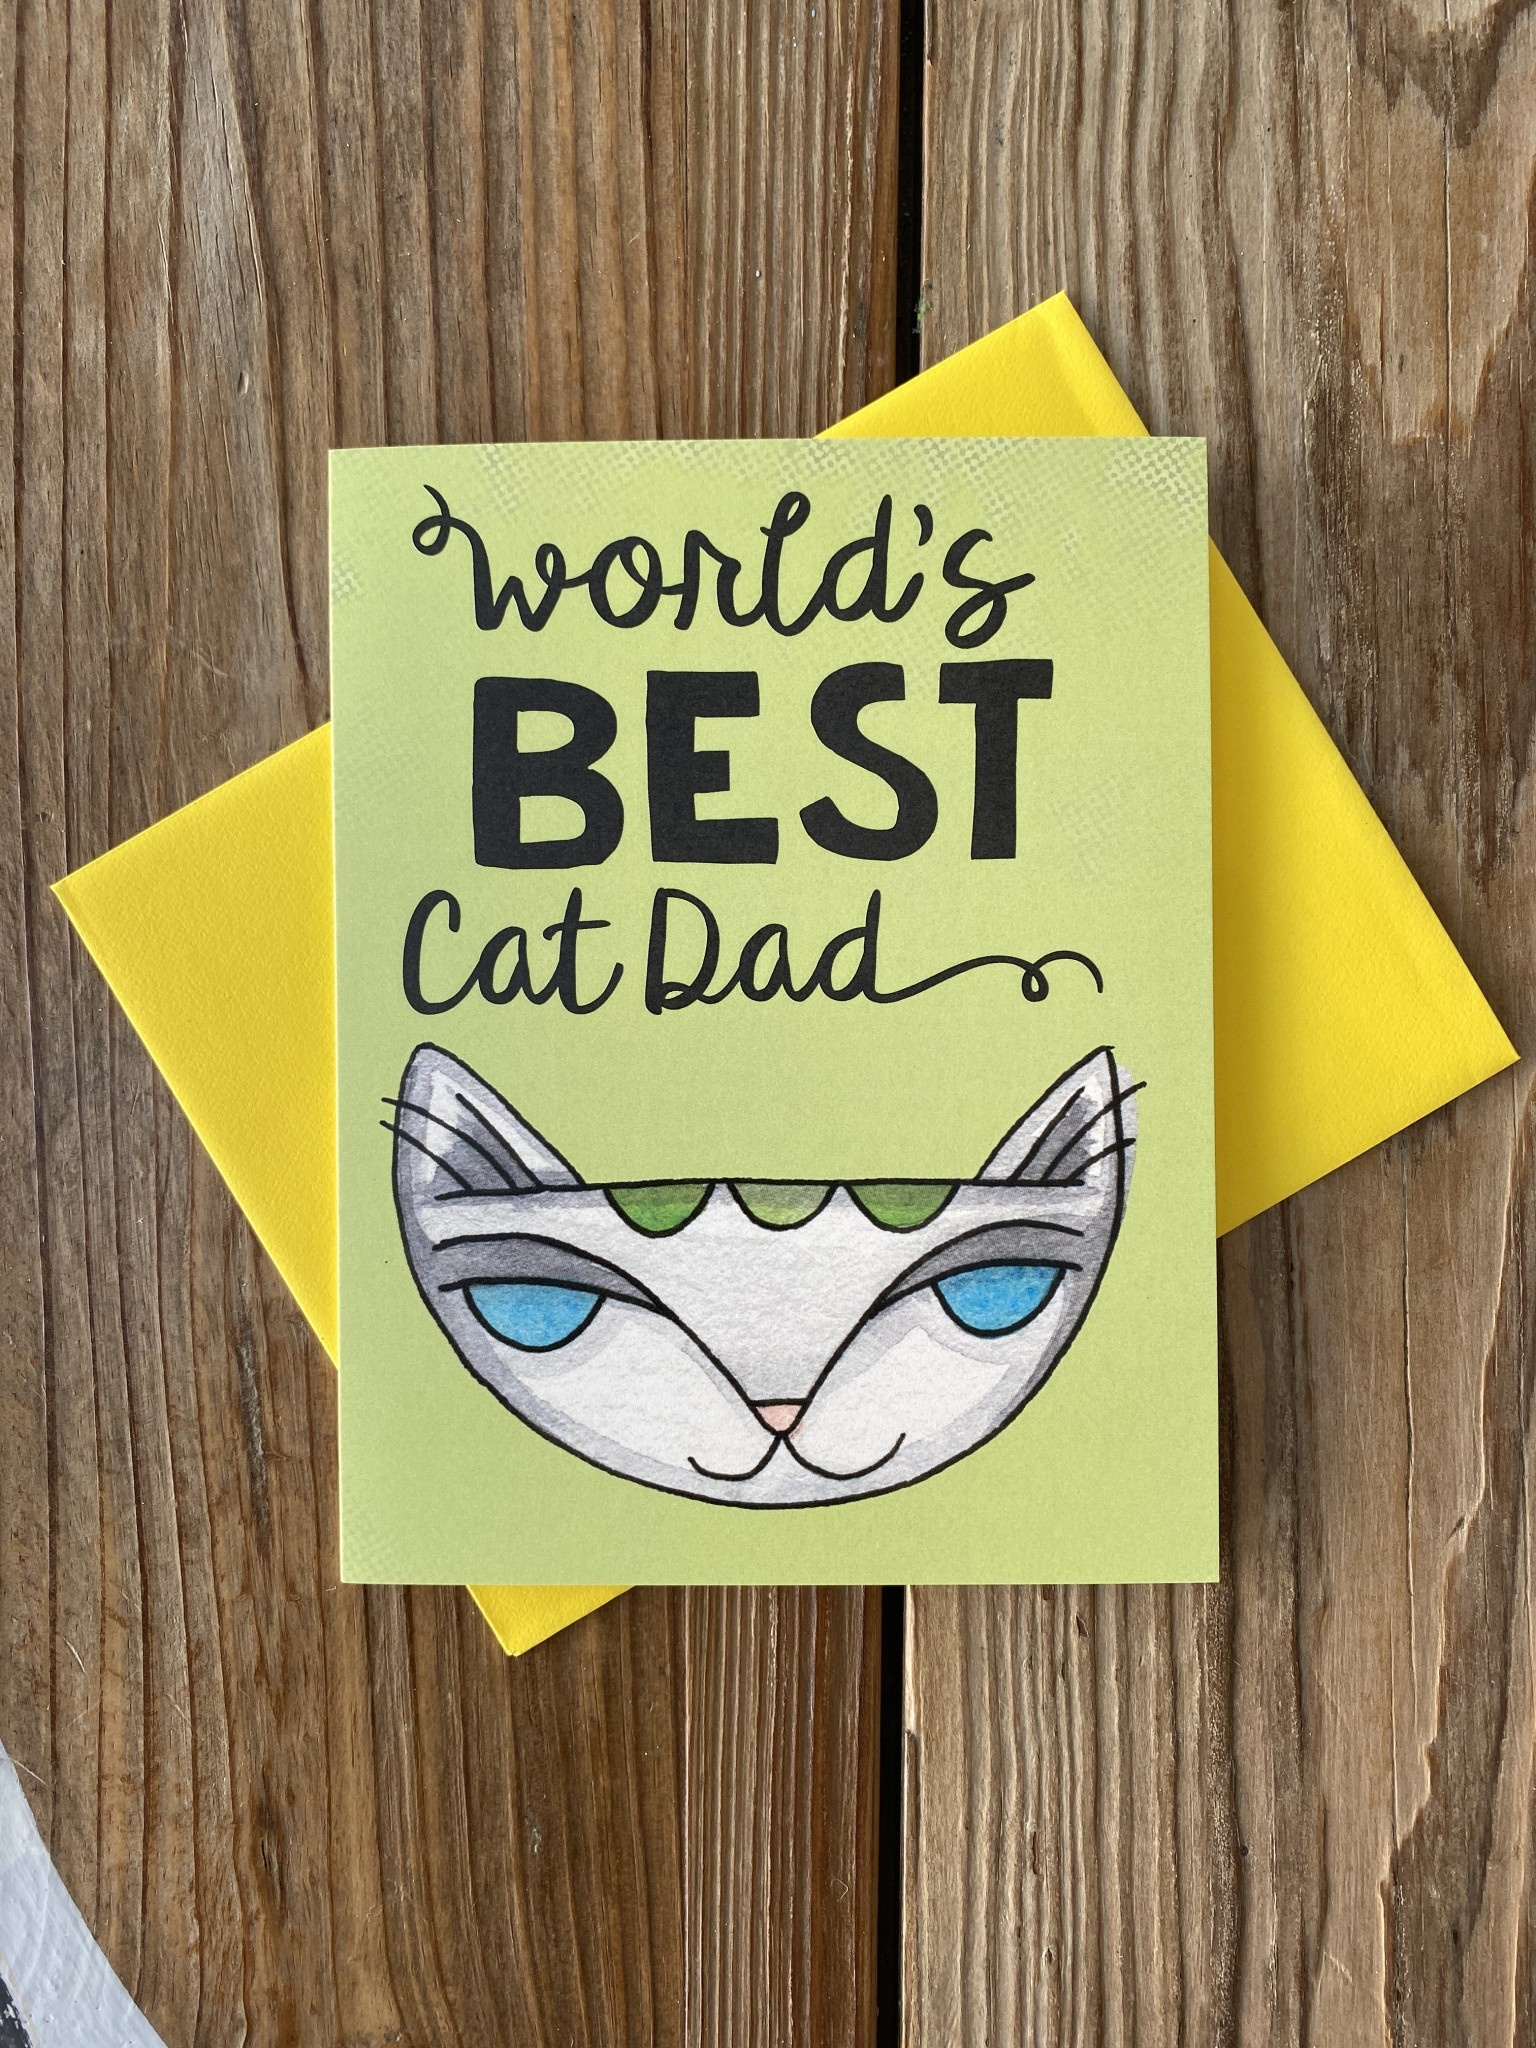 Cat People Press World's Best Cat Dad Greeting Card